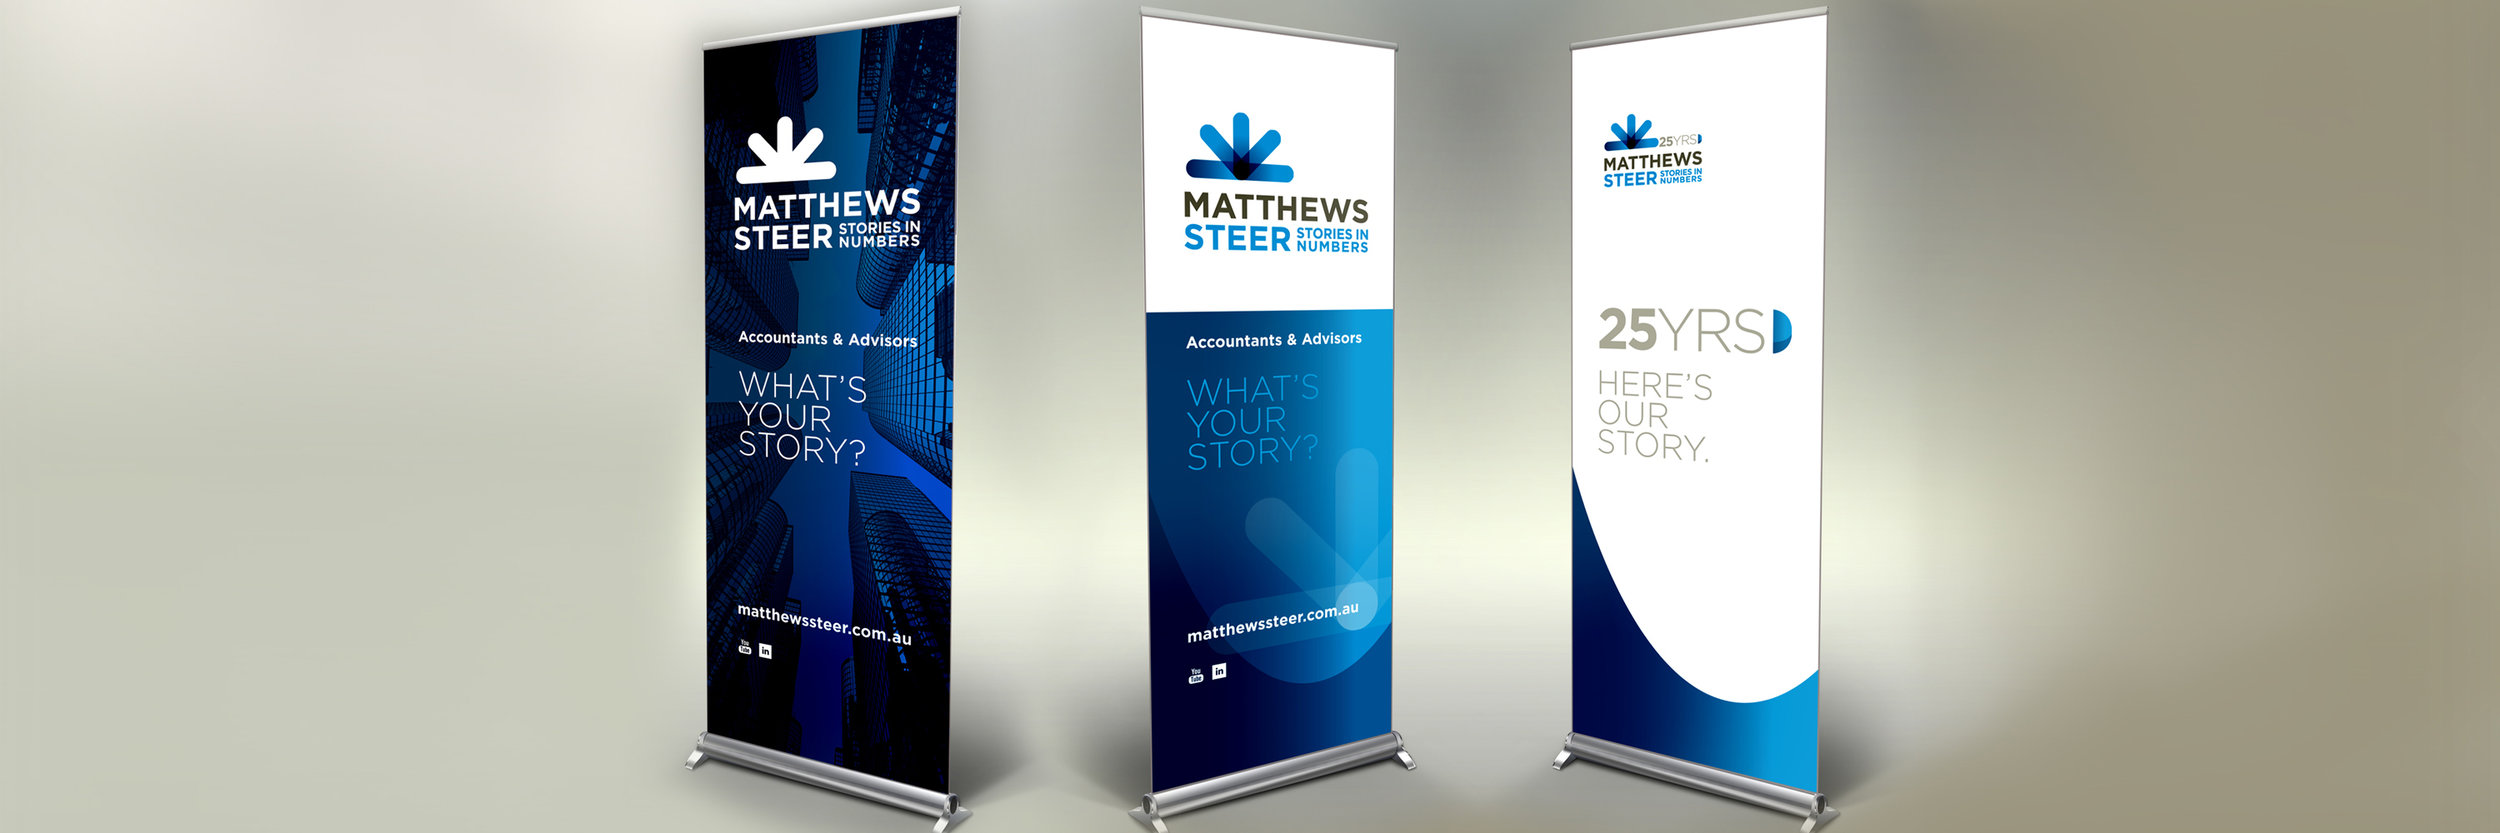 Room44_MatthewsSteer_pull-up-banners-x3 3000x1000.jpg